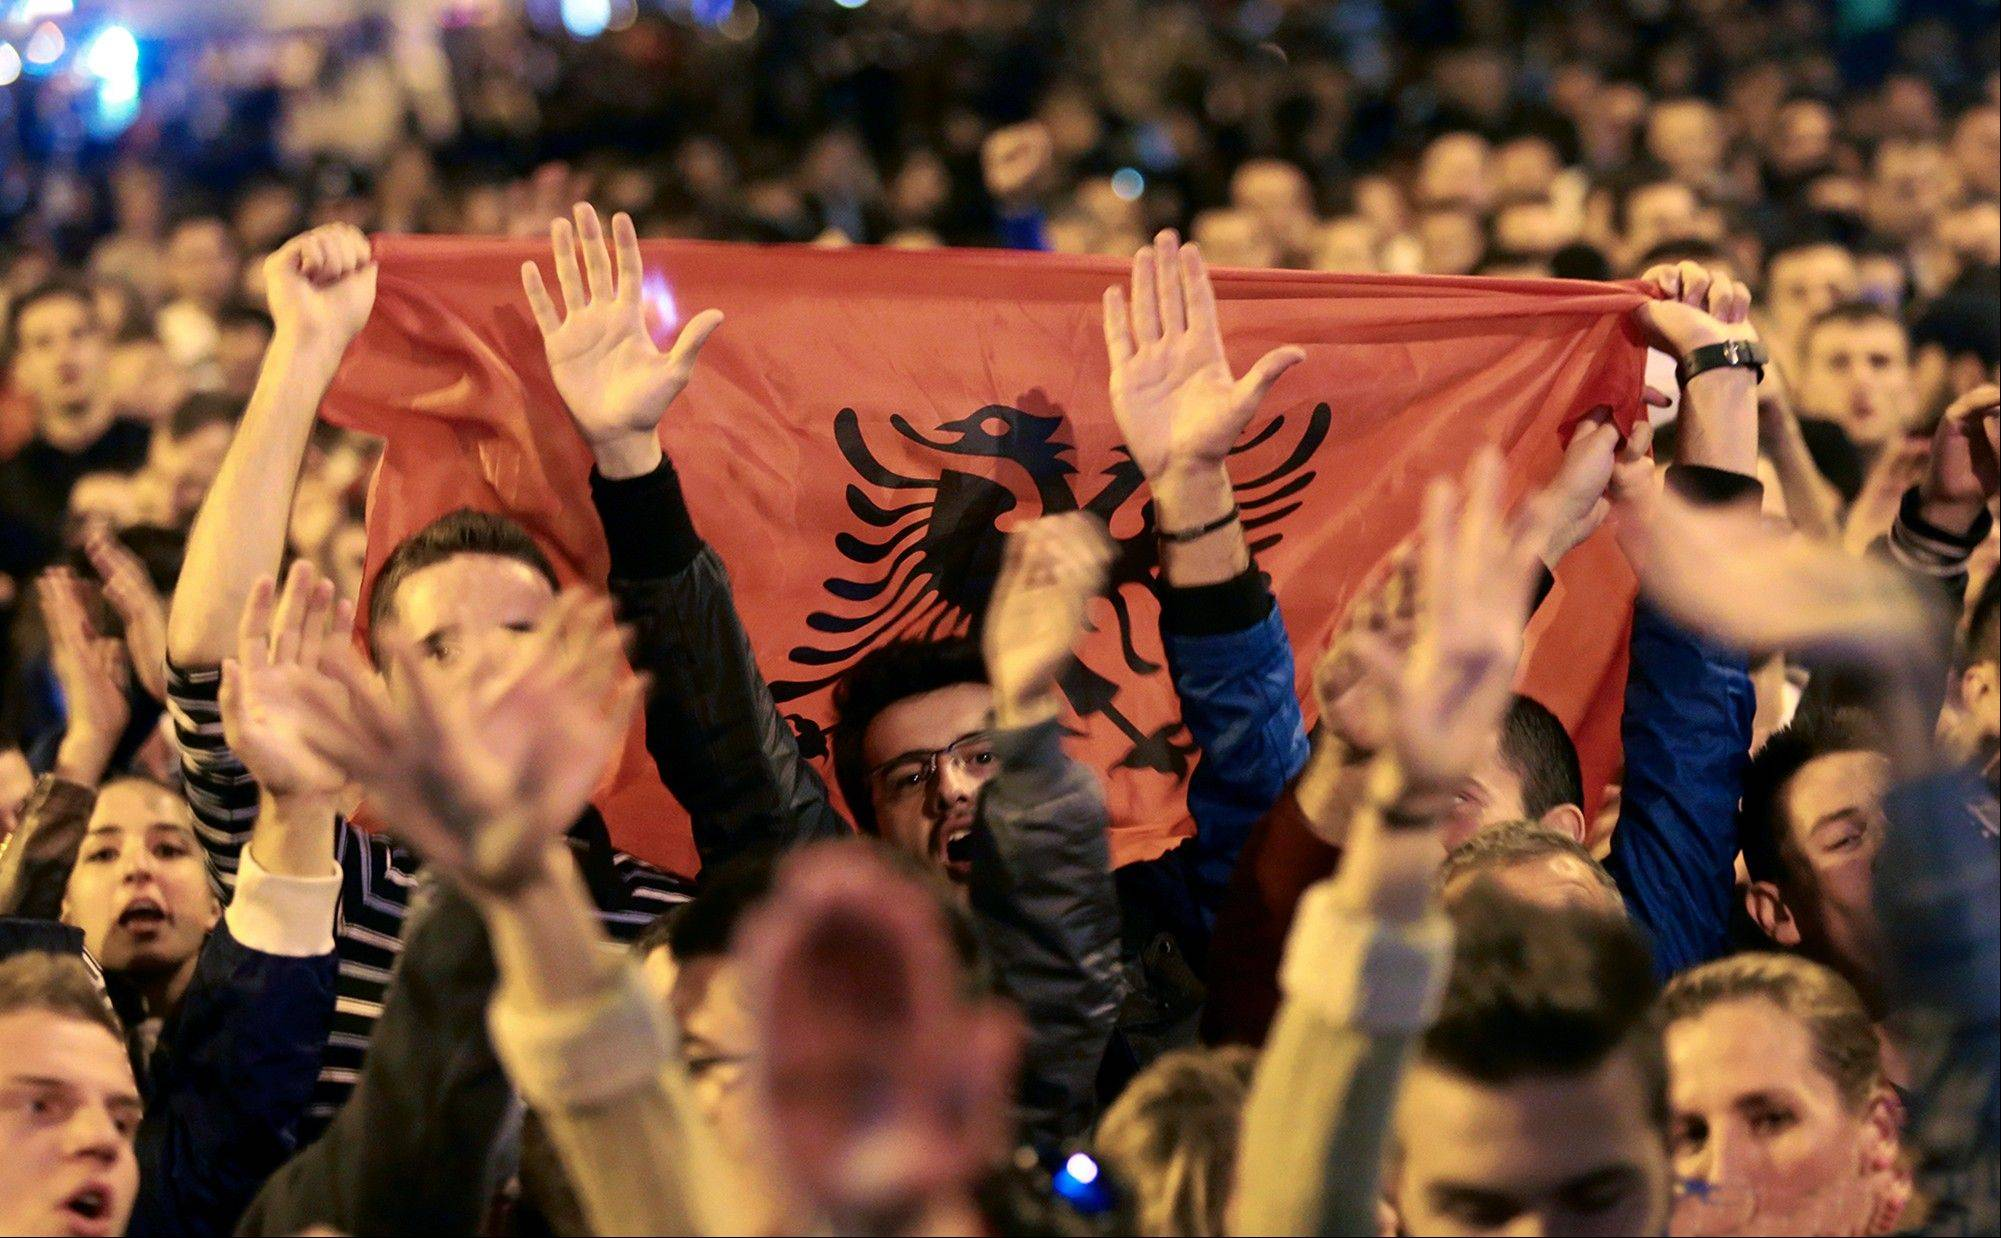 Thousands of Albanians gather to celebrate the announcement made by Prime Minsiter Edi Rama that he turned down a request by the Untied States to host an operation to destroy Syria's chemical weapons.